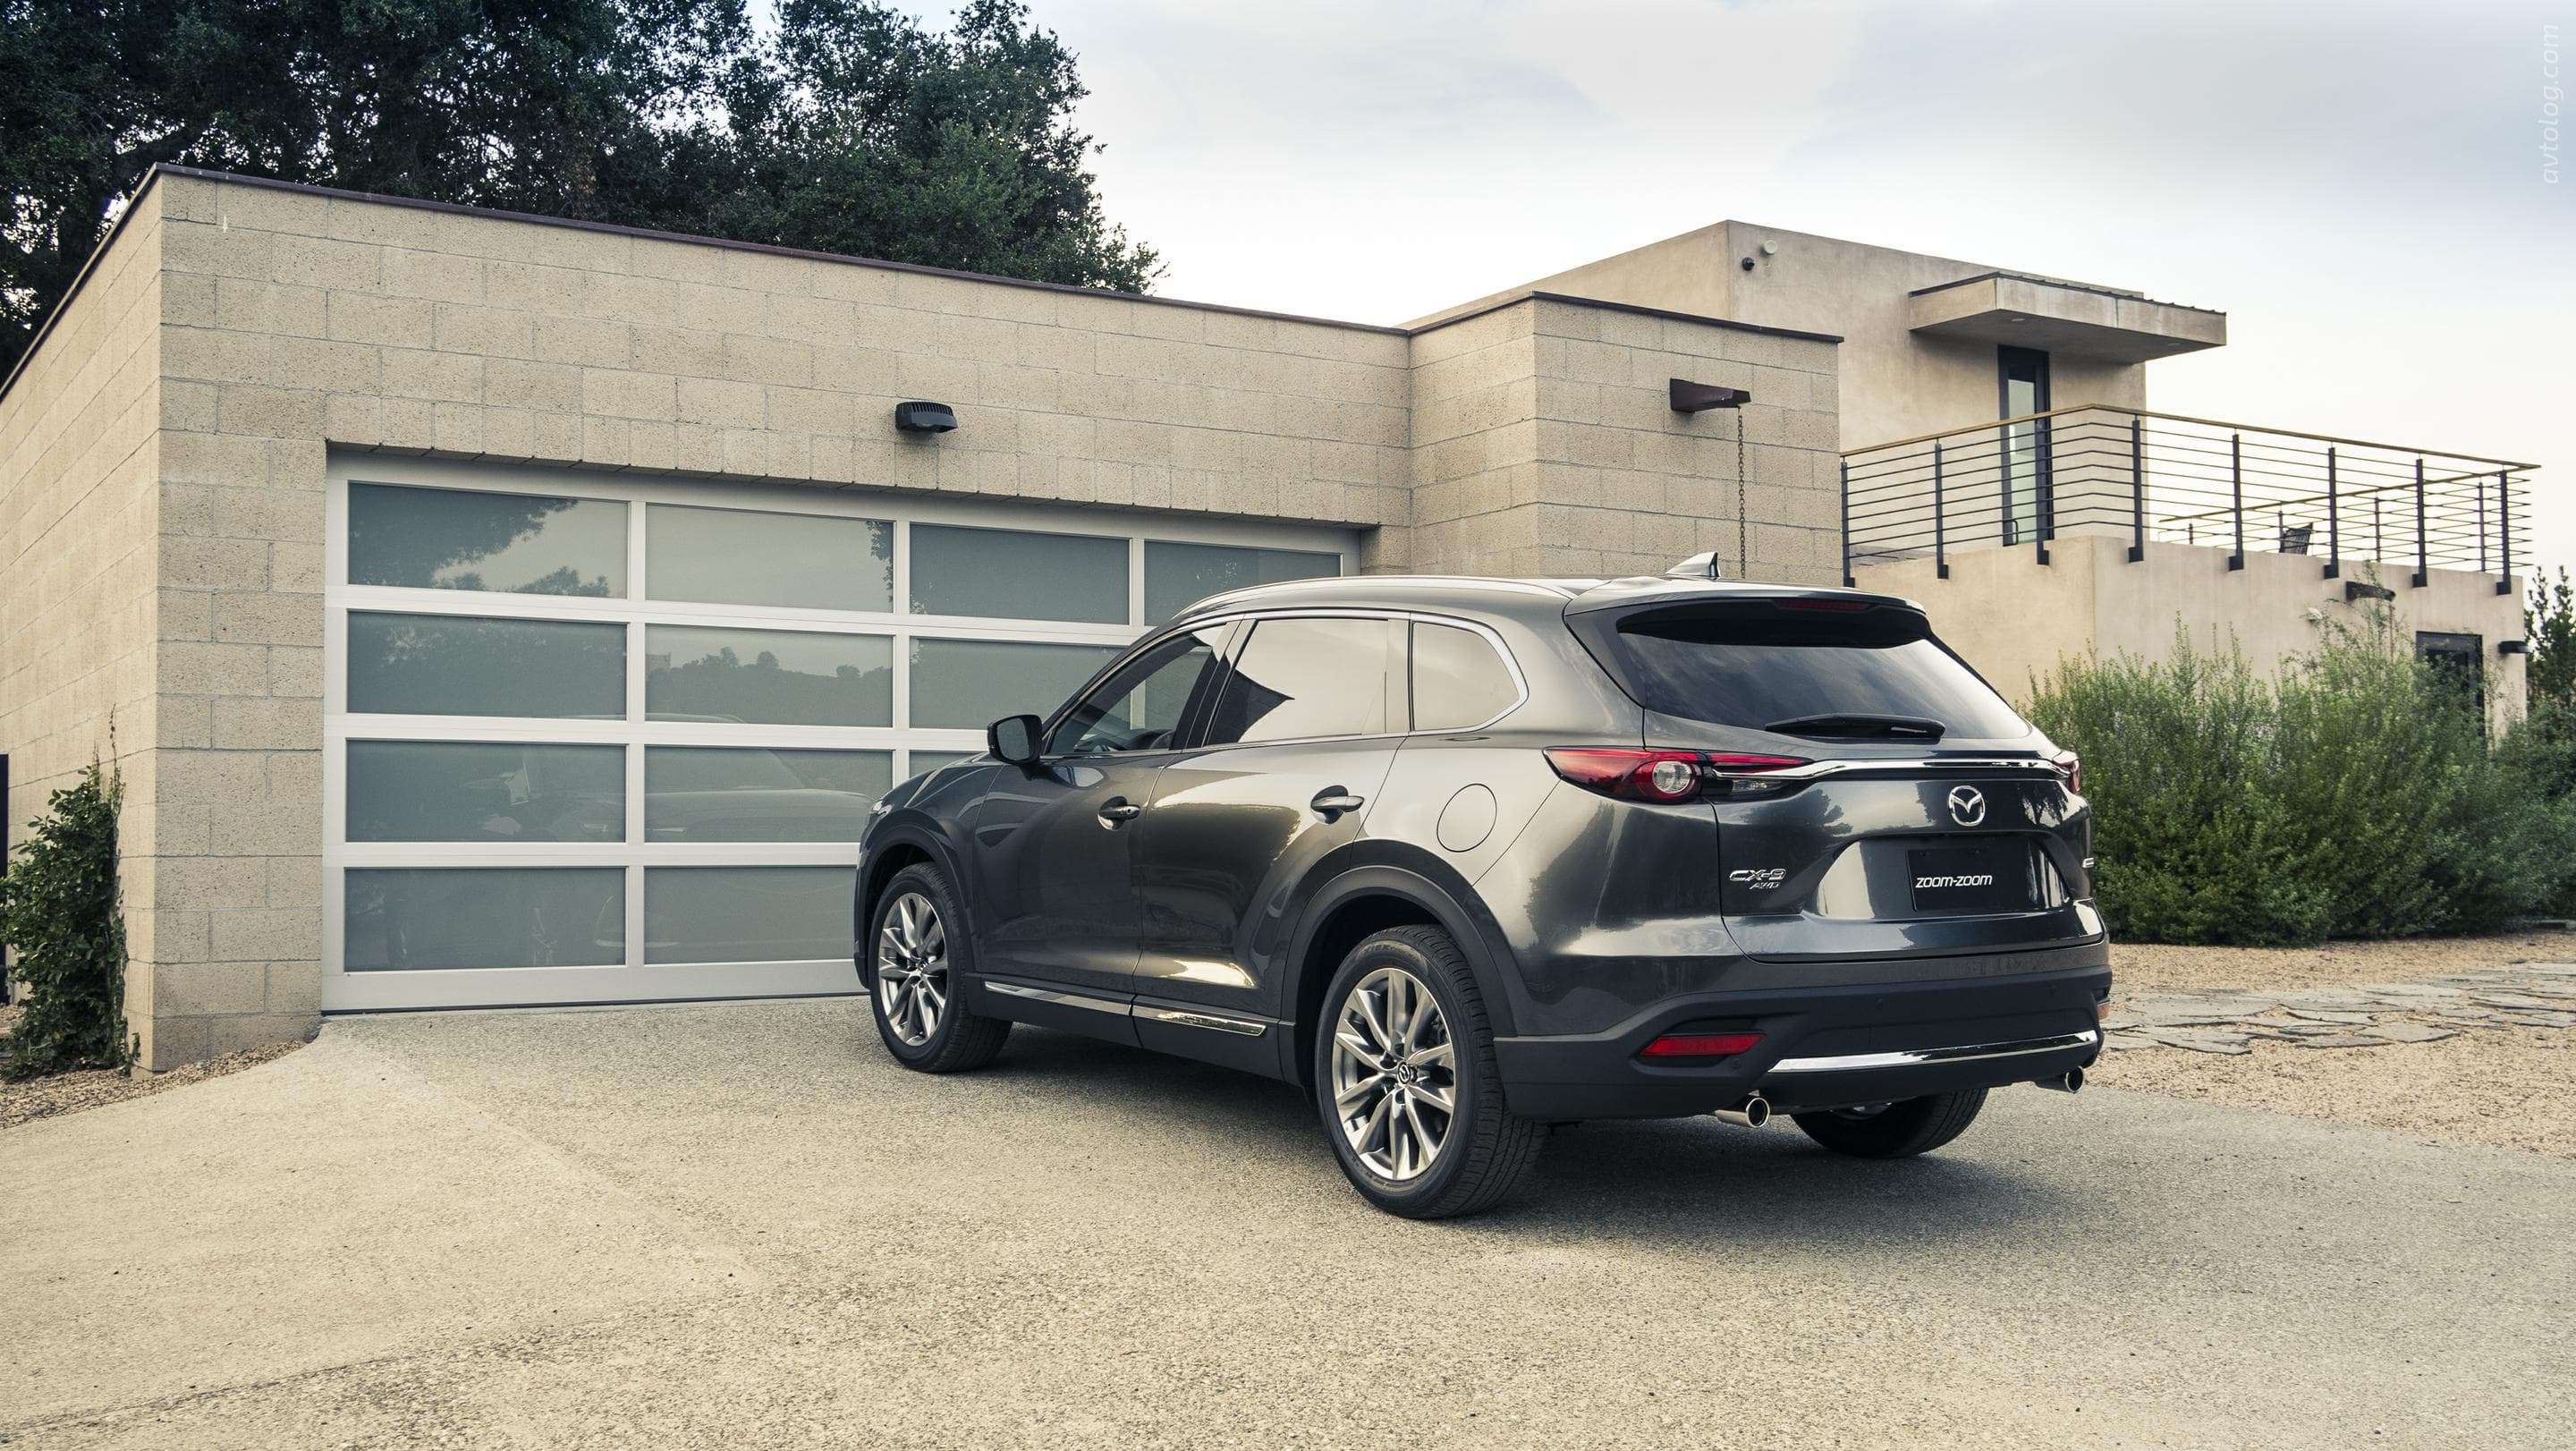 2016 Mazda CX-9 wheels wallpaper High Quality